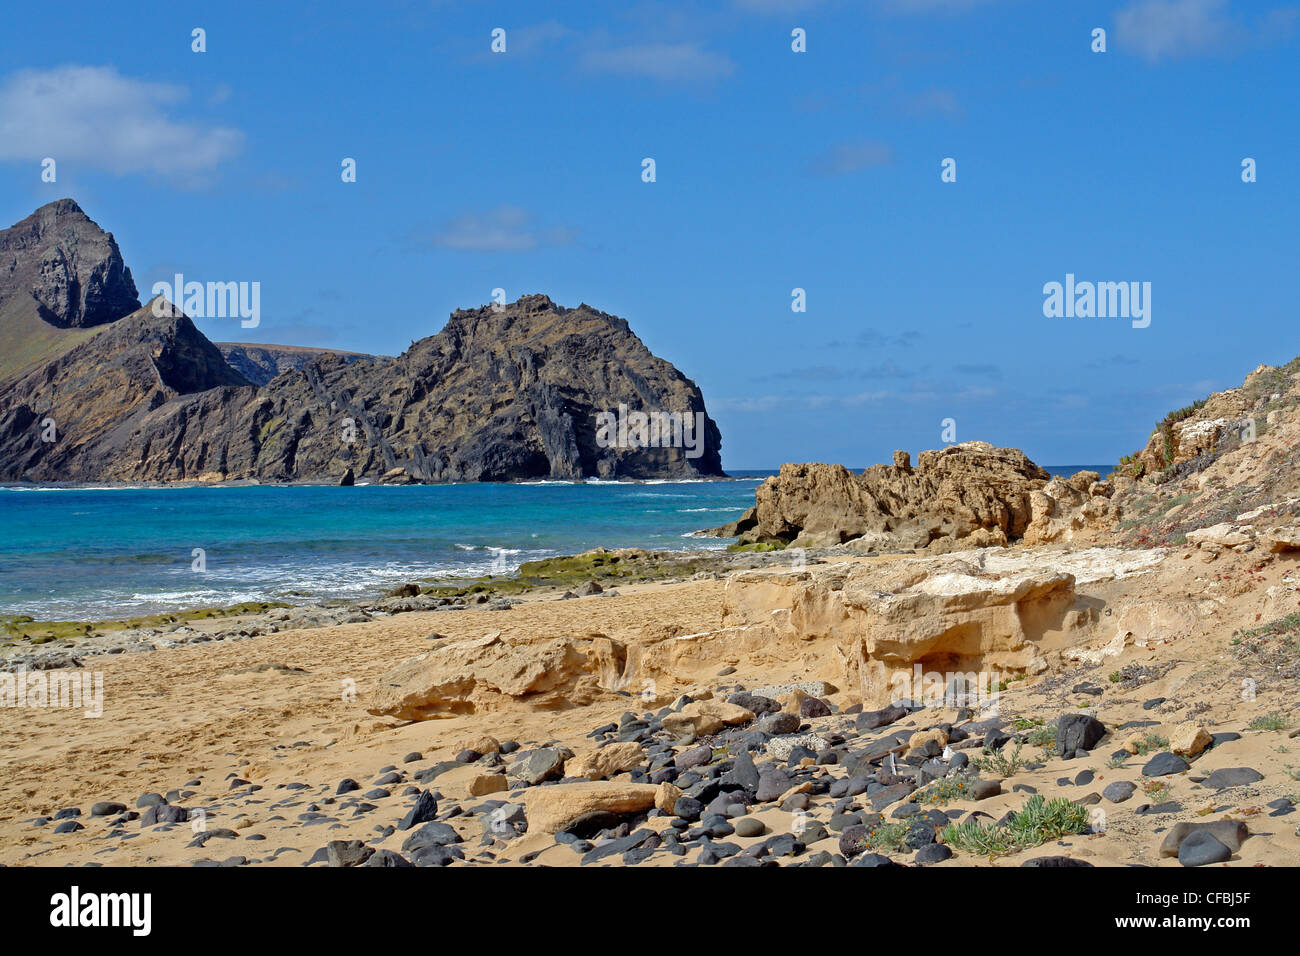 Europe, Portugal, Porto Santo, Ponta da Calheta, Ilheu de Baixo, Ilheu da cal, waves, mountains, rocks, cliffs, - Stock Image